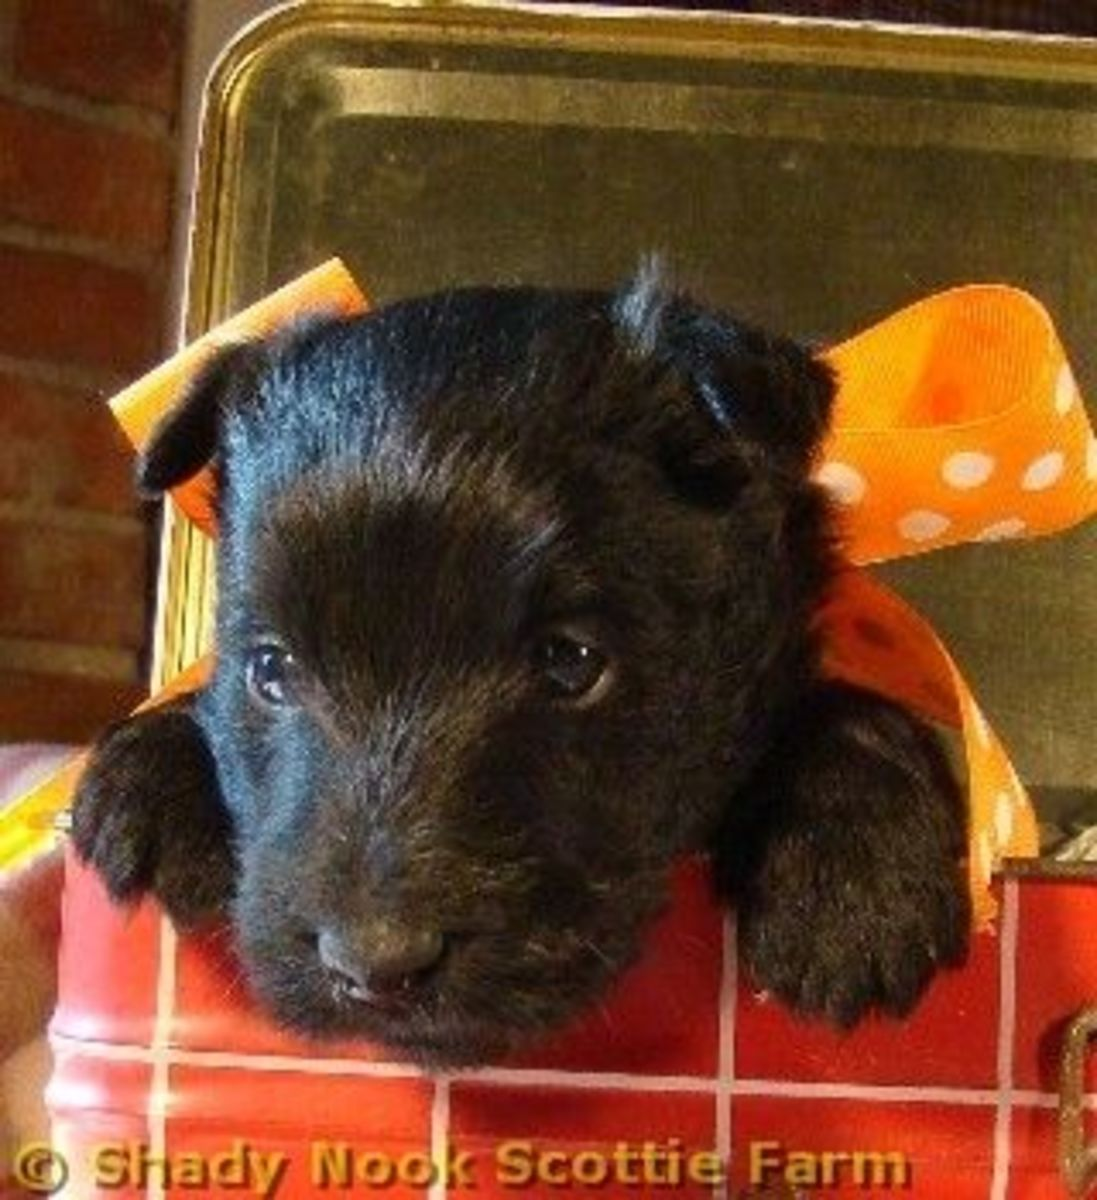 Scottish Terrier Puppy - Our Brodie at 4 Weeks